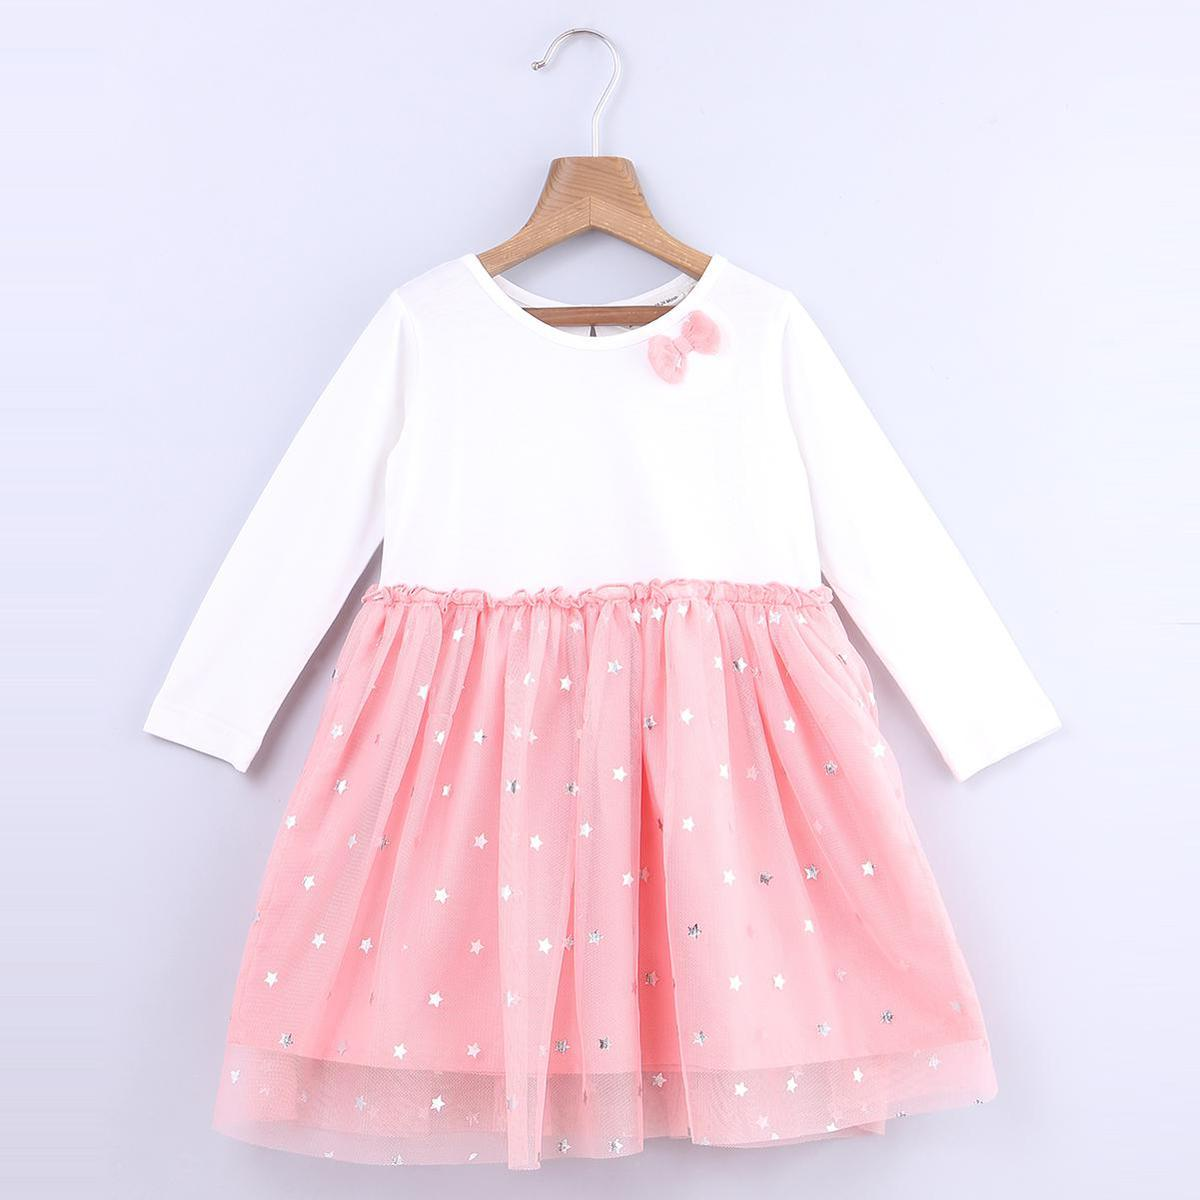 Beebay - Peach Colored Star Foil Print Cotton Dress For Kids Girls